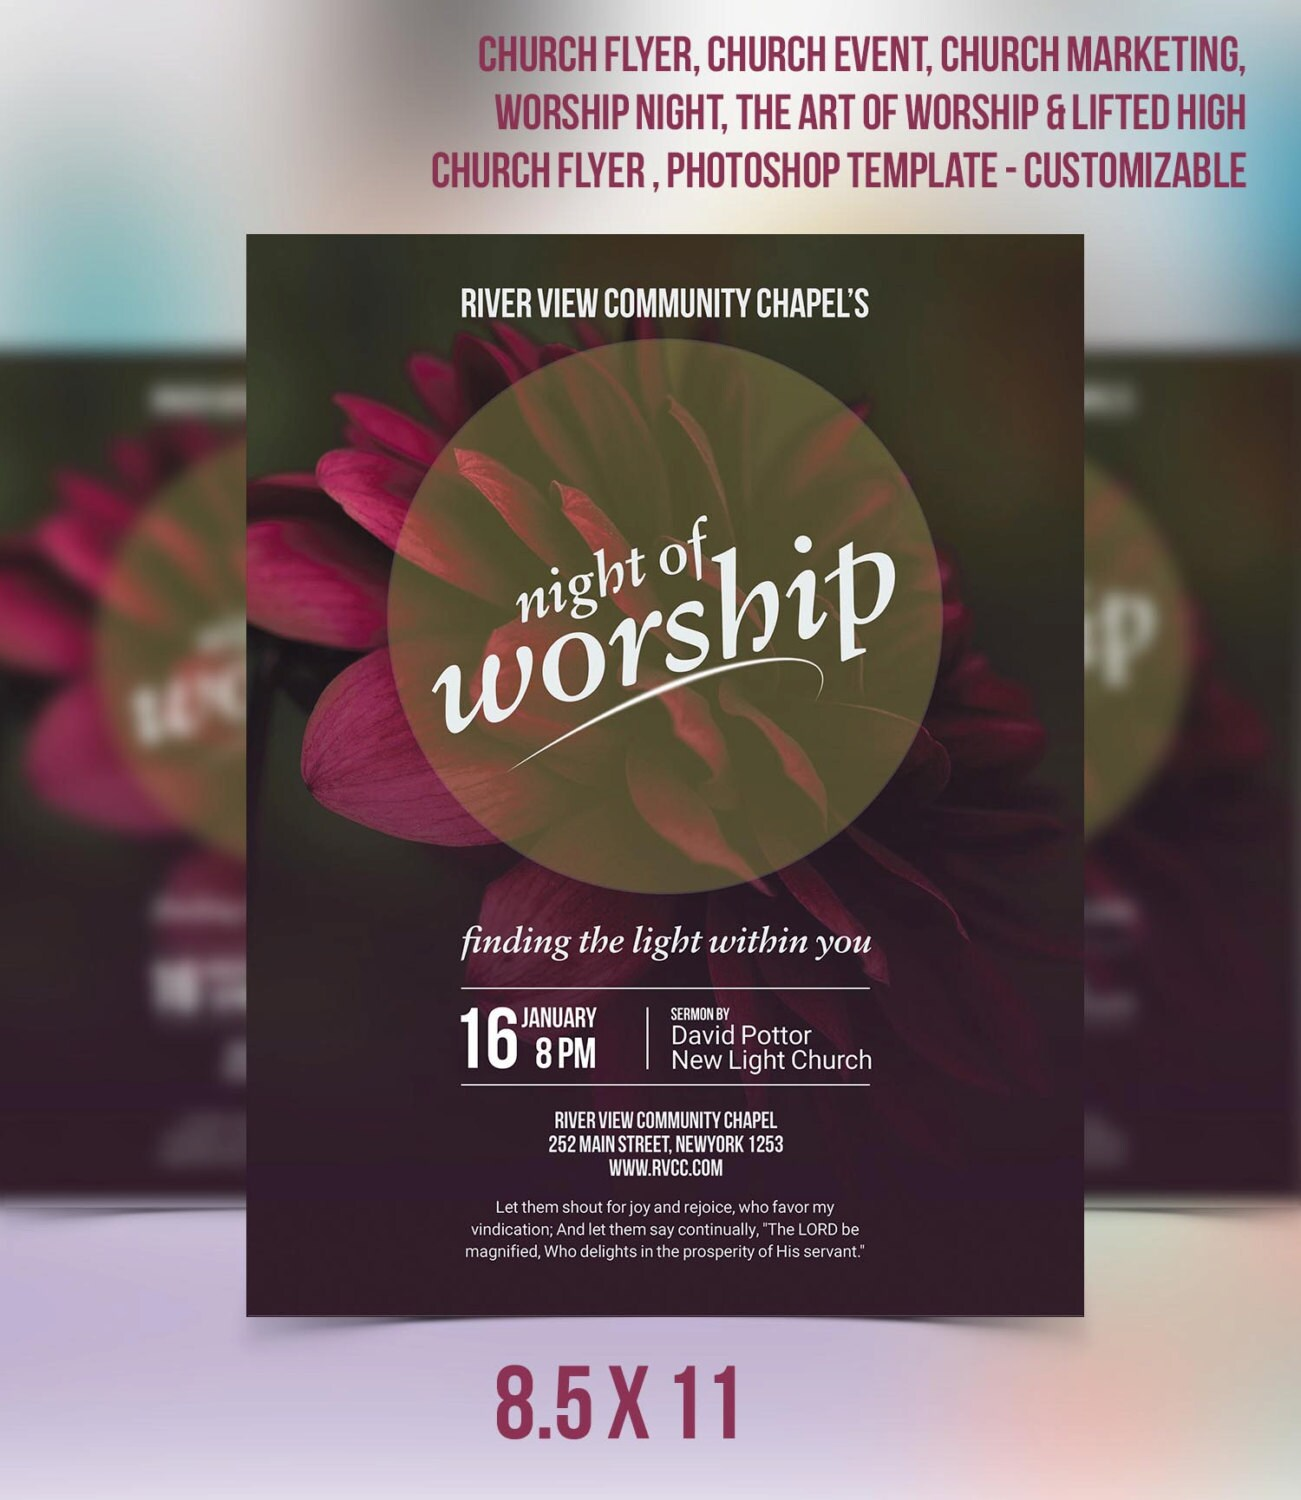 Church Flyer Church Event Church Marketing Worship Night